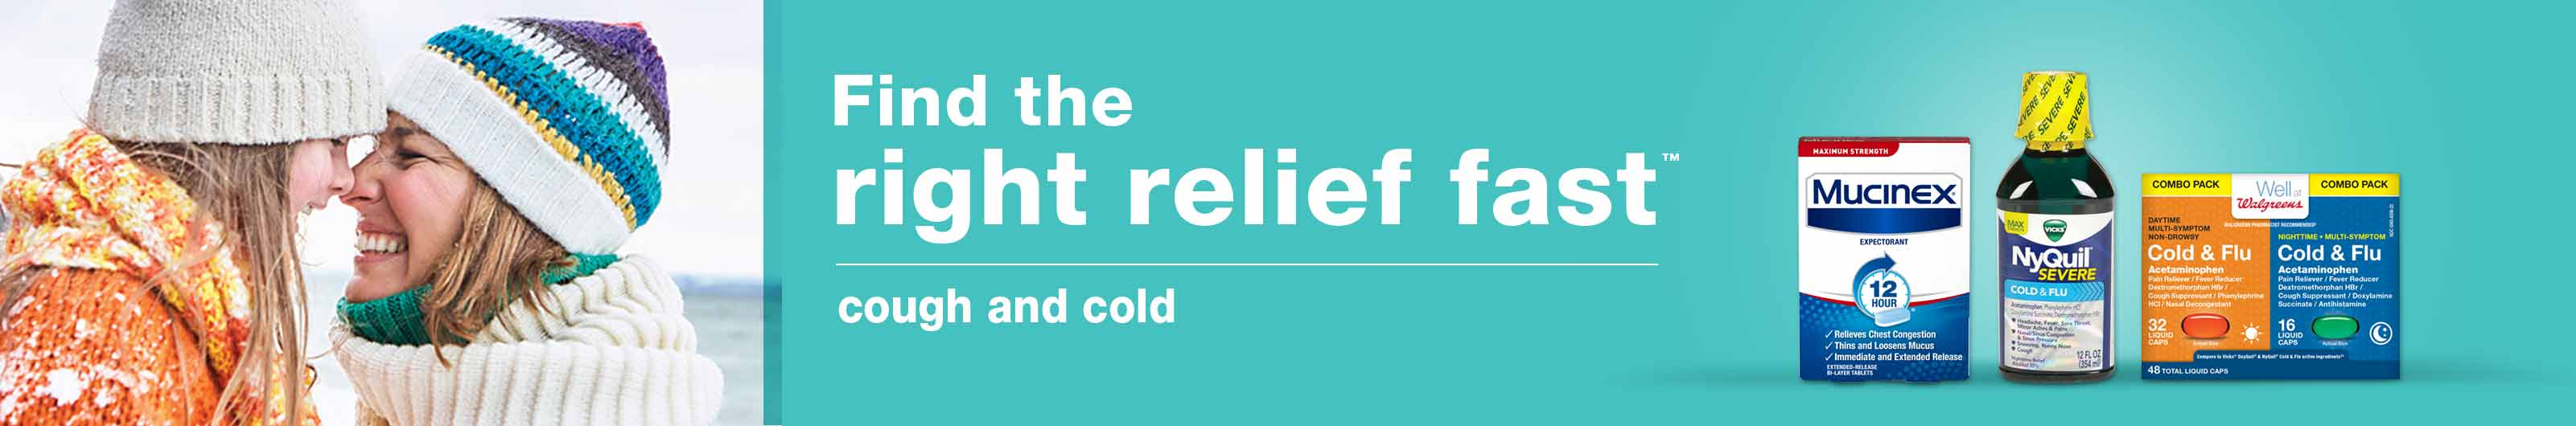 Find the right relief fast(TM) cough and cold